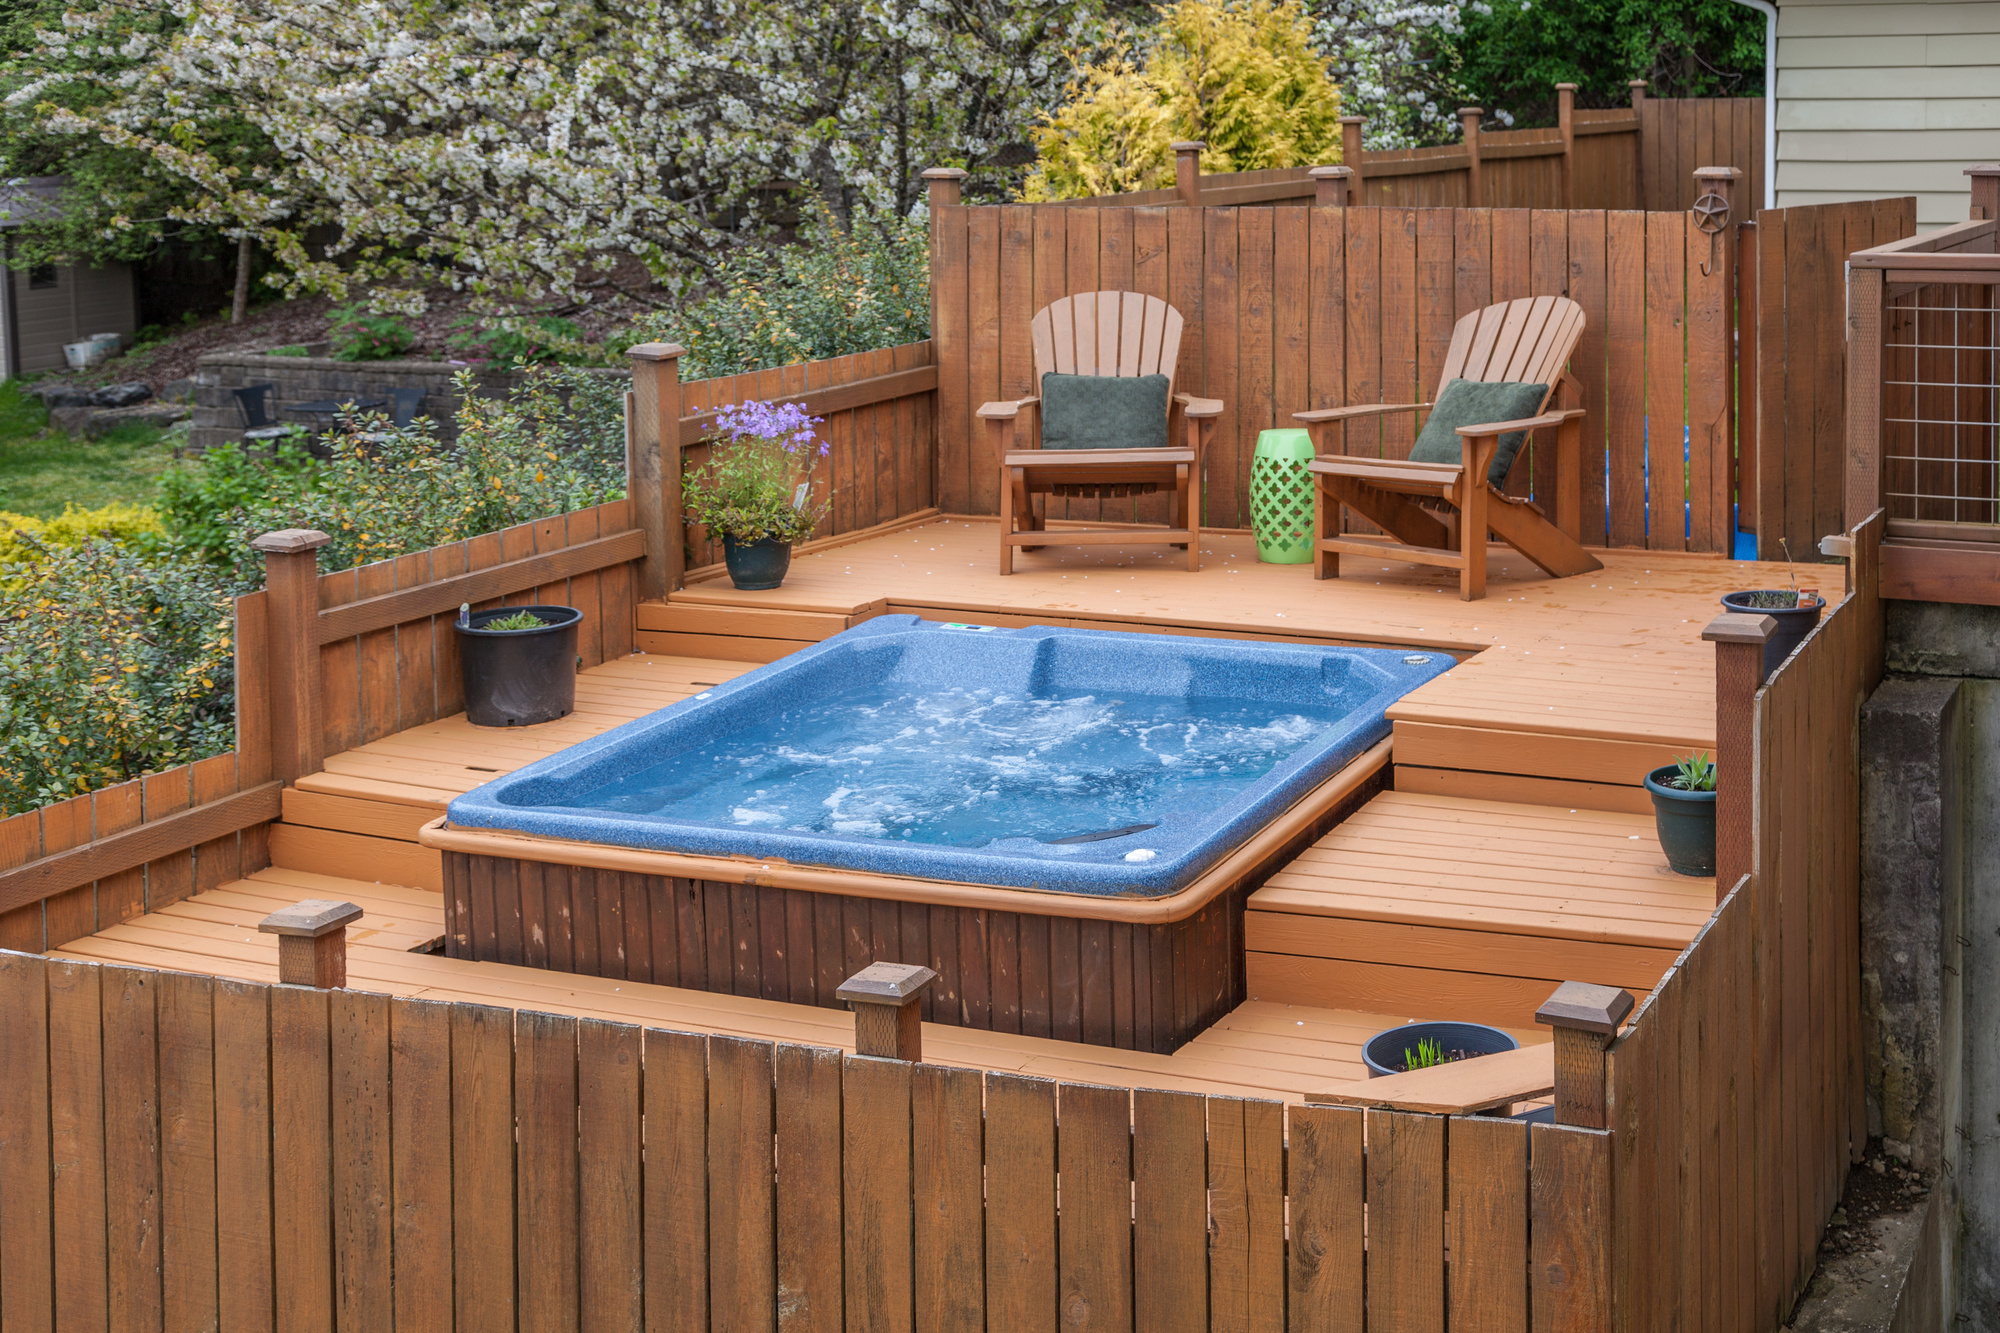 Installing An Outdoor Hot Tub Considerations